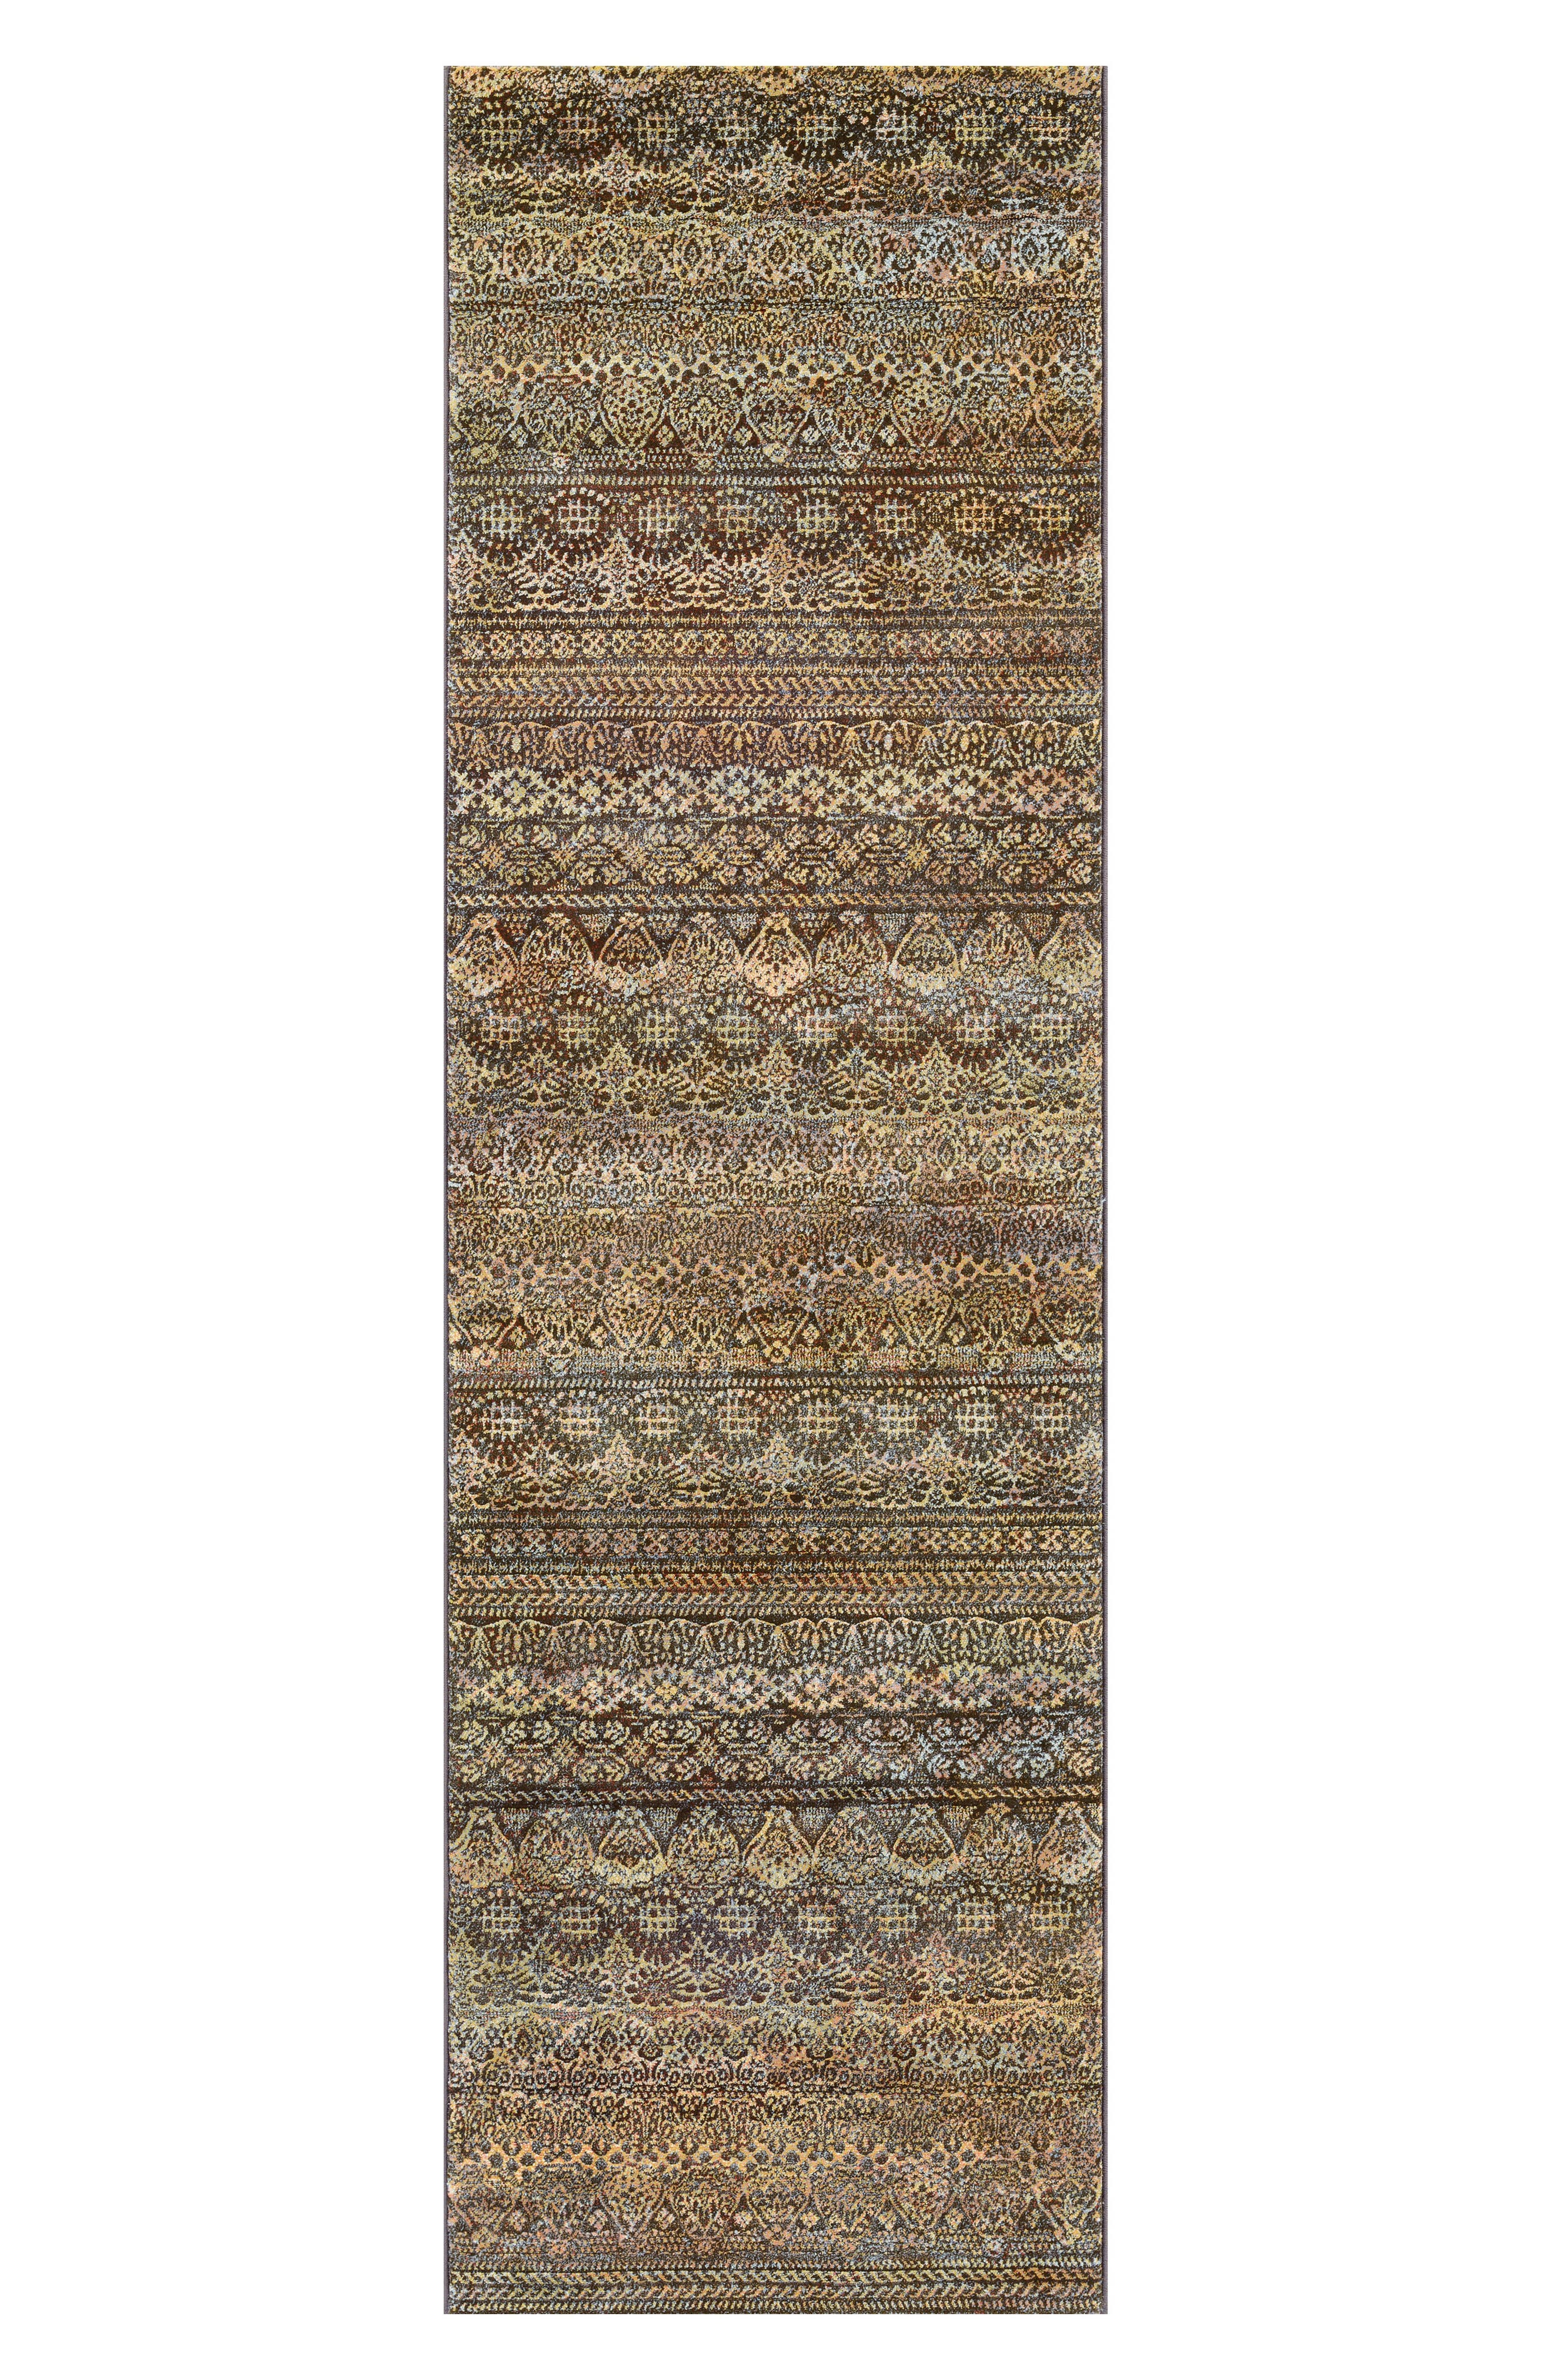 Easton Capella Area Rug,                             Alternate thumbnail 2, color,                             BROWN/ MULTI